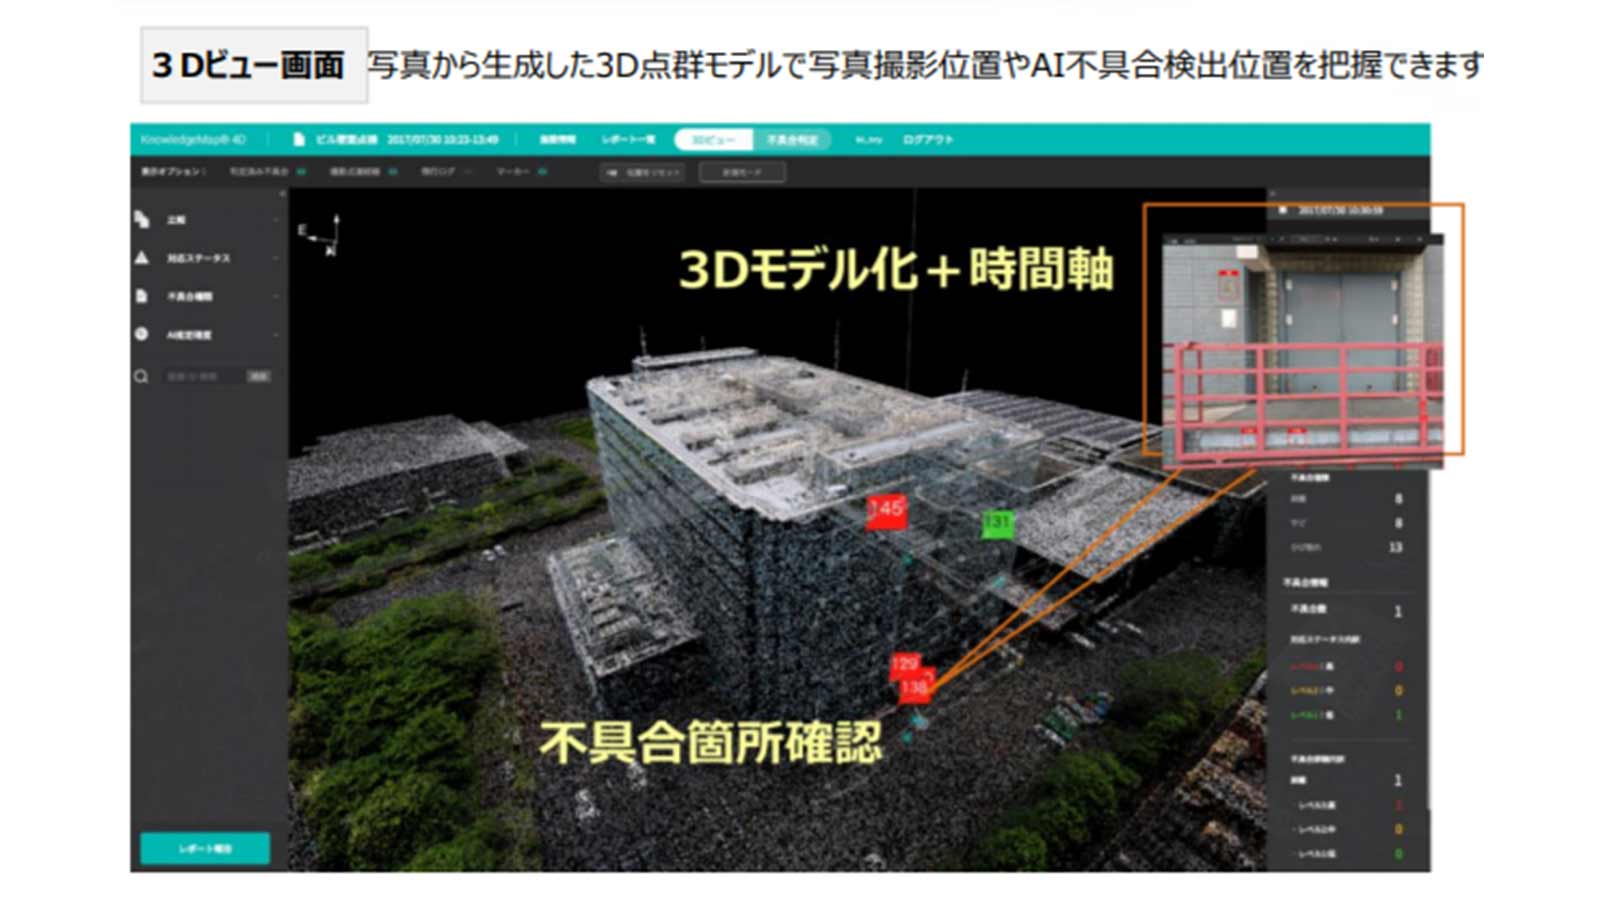 Point cloud of a building by NTT Comware